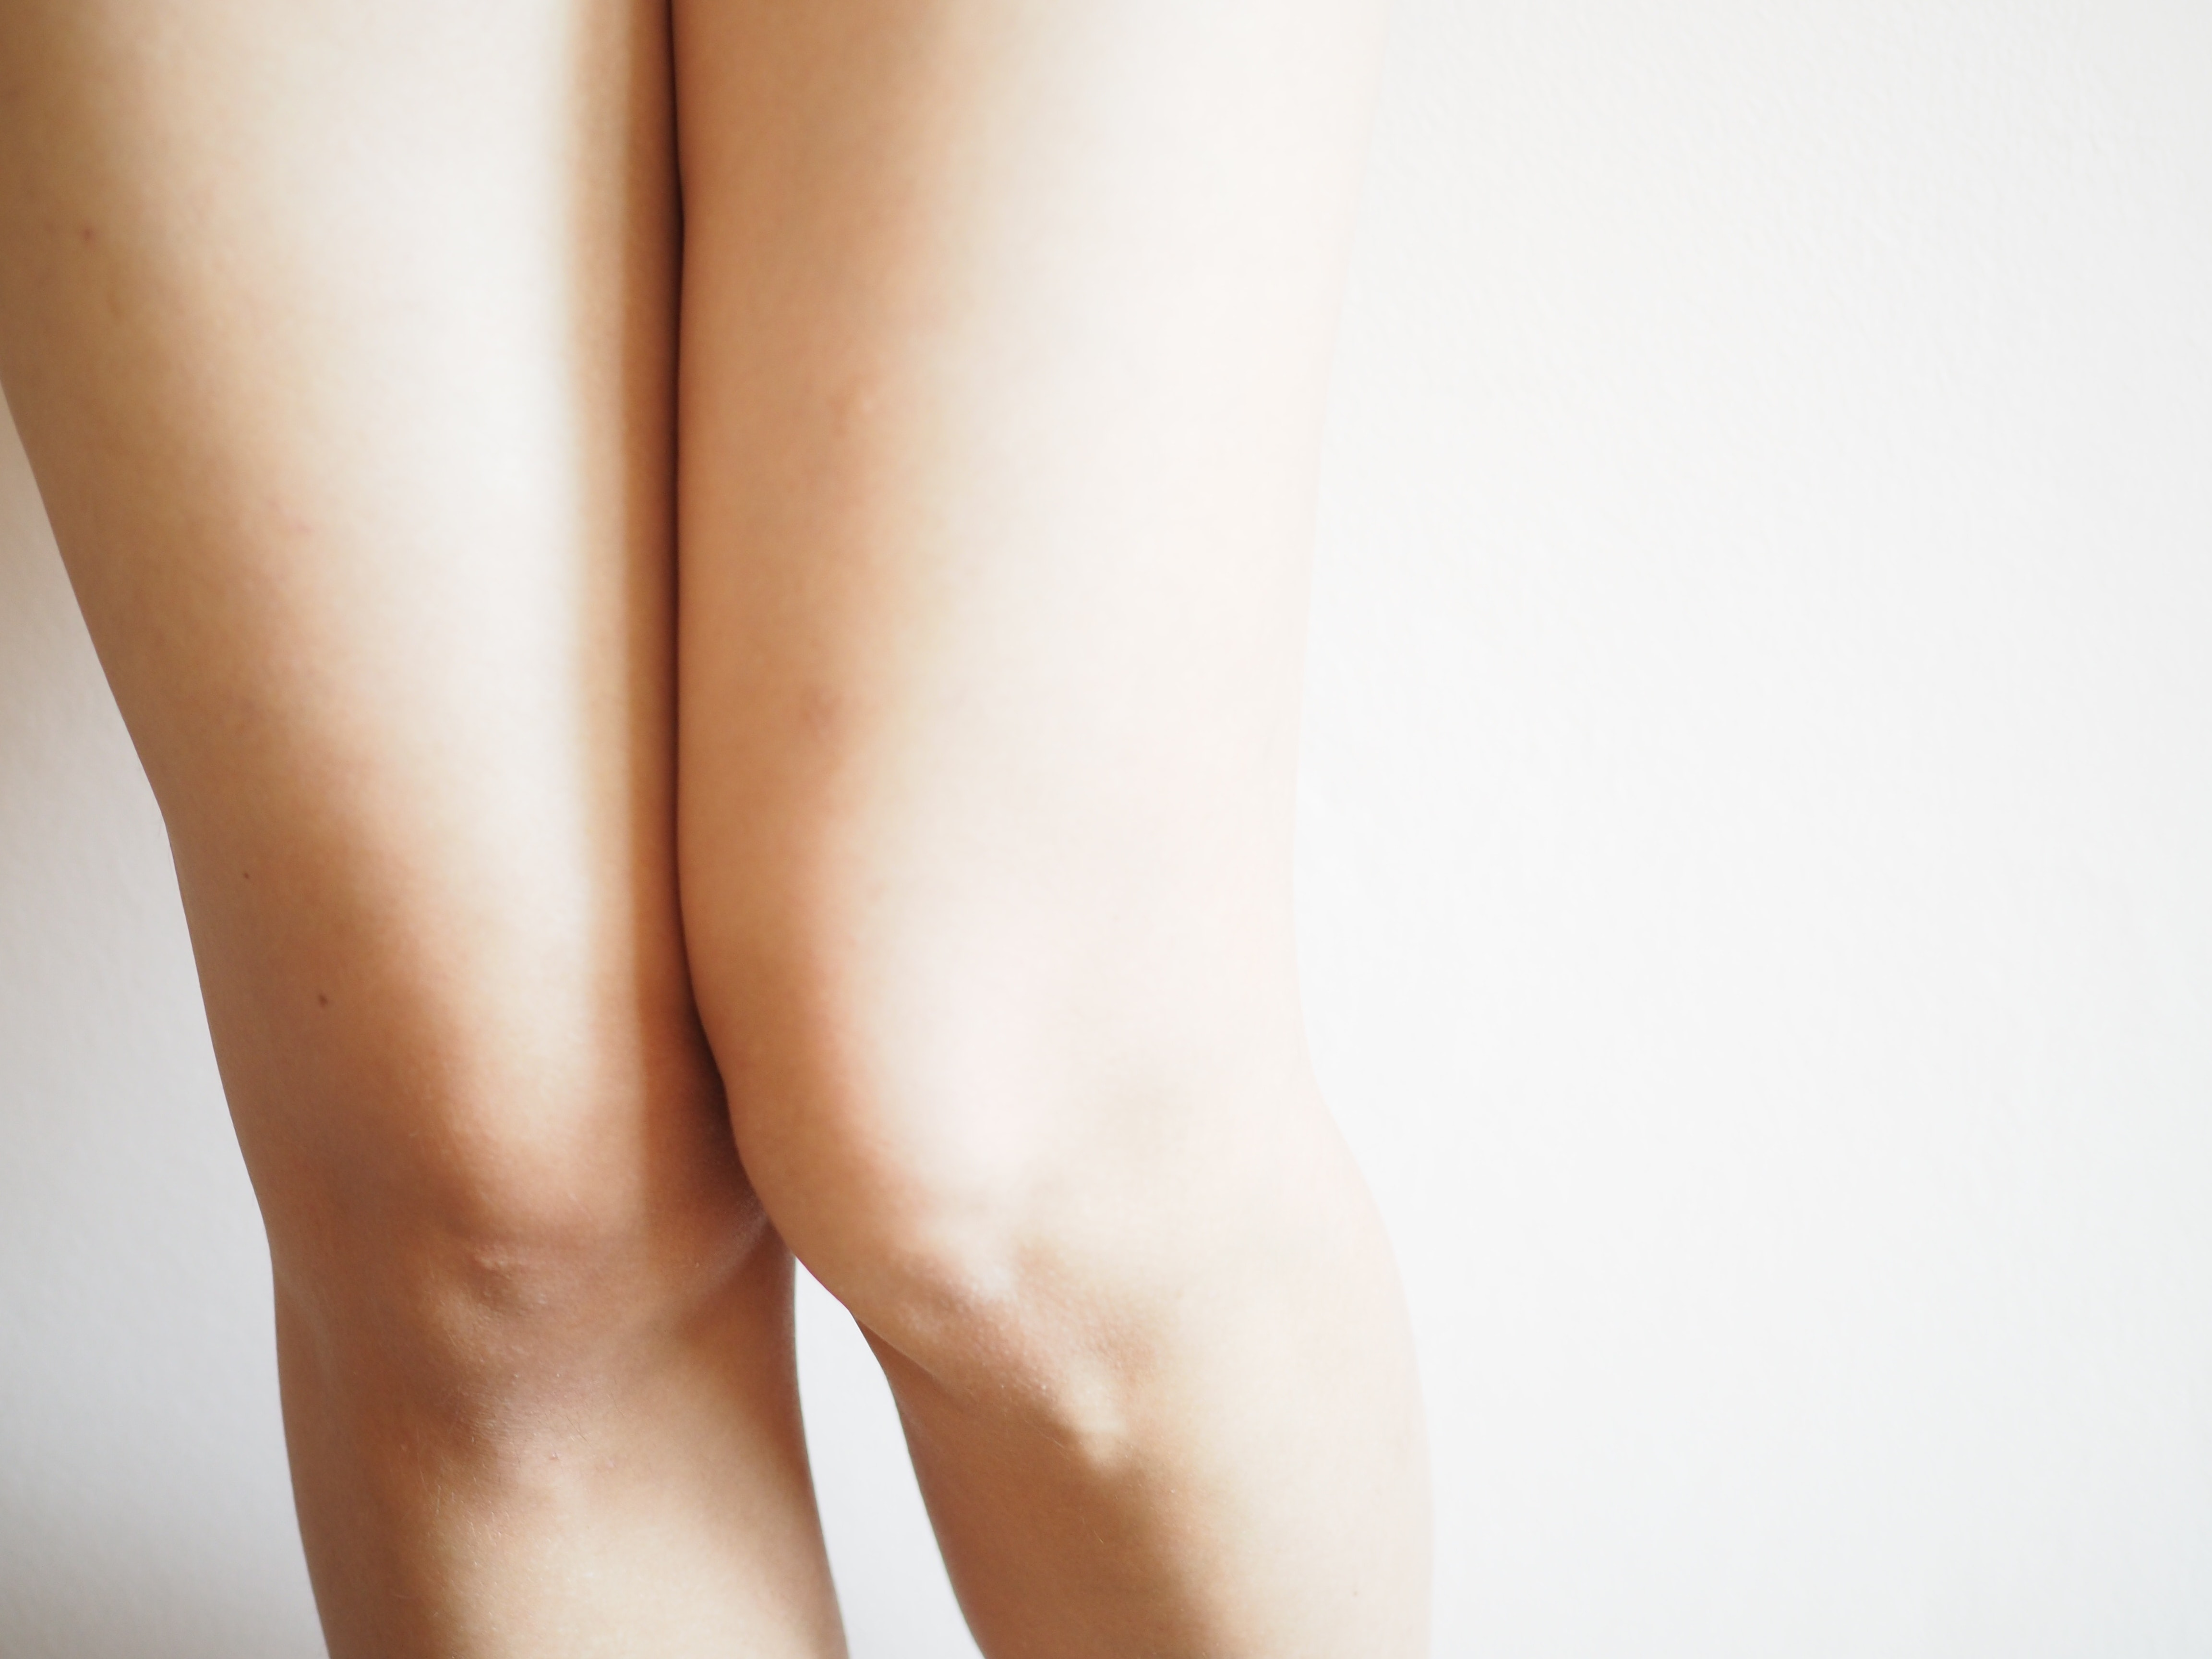 An image depicting a person suffering from yellow or white upper leg bump symptoms